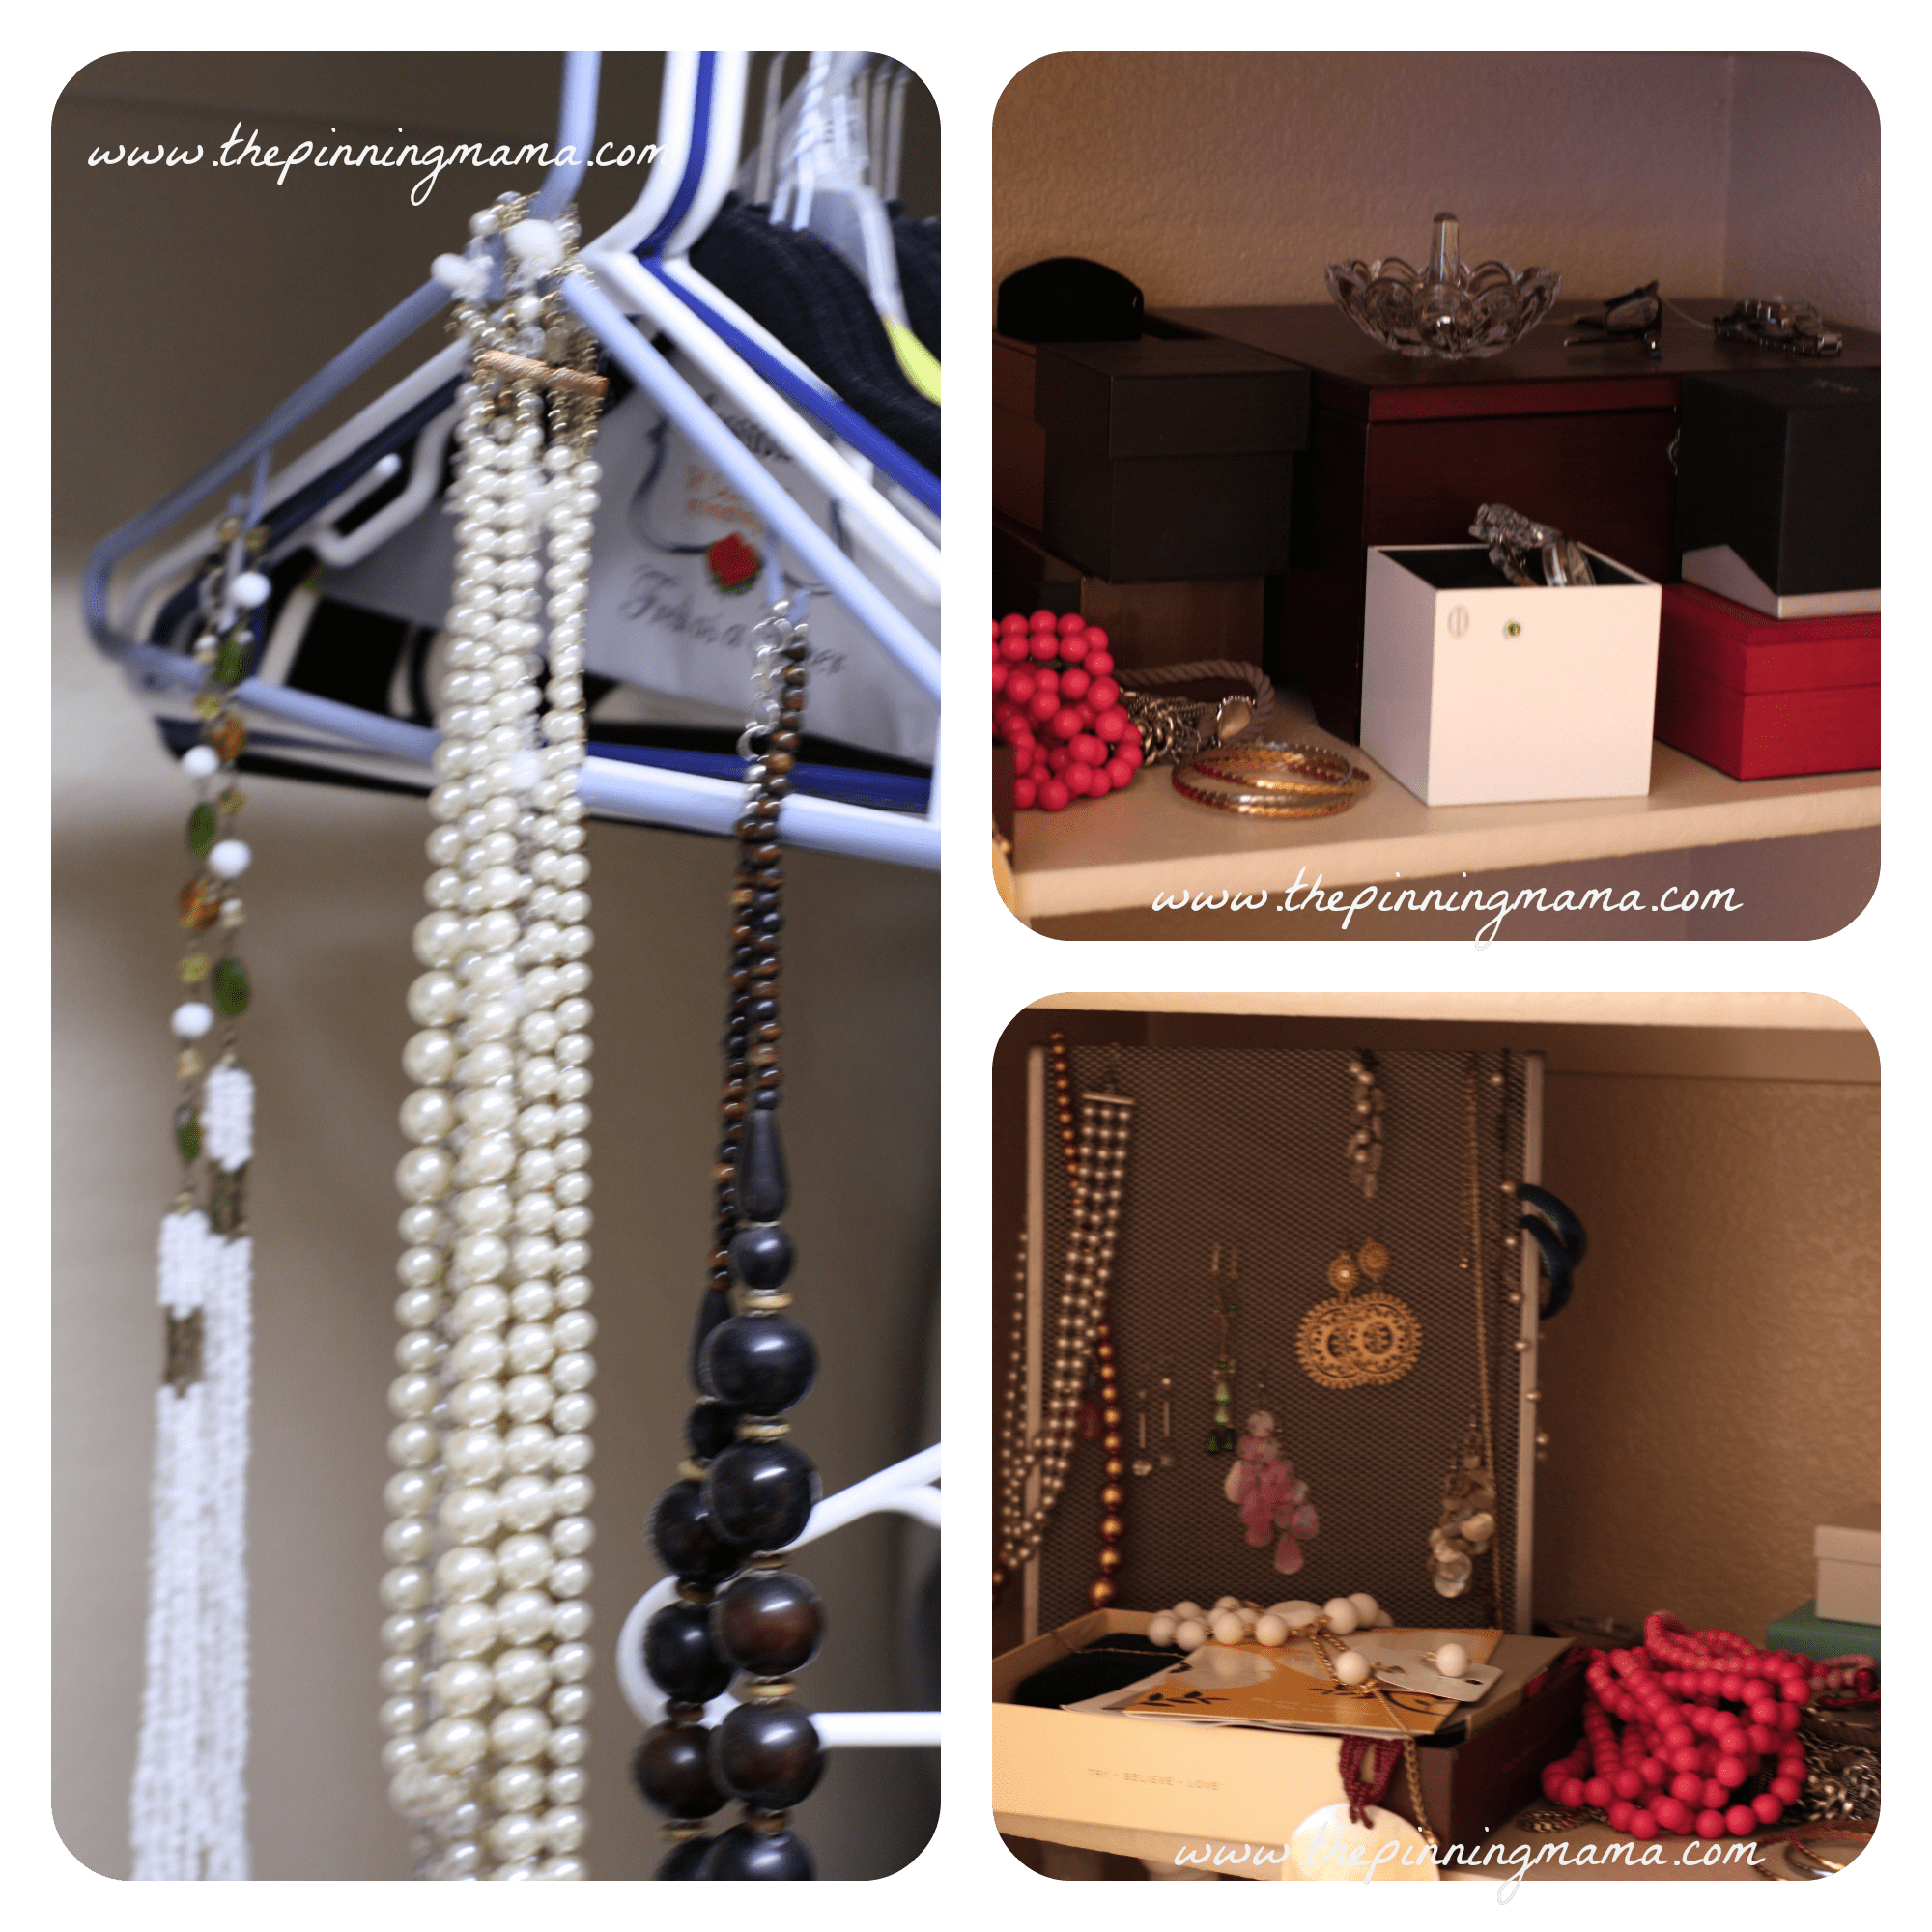 diy How to Make a Jewelry Organizer The Pinning Mama